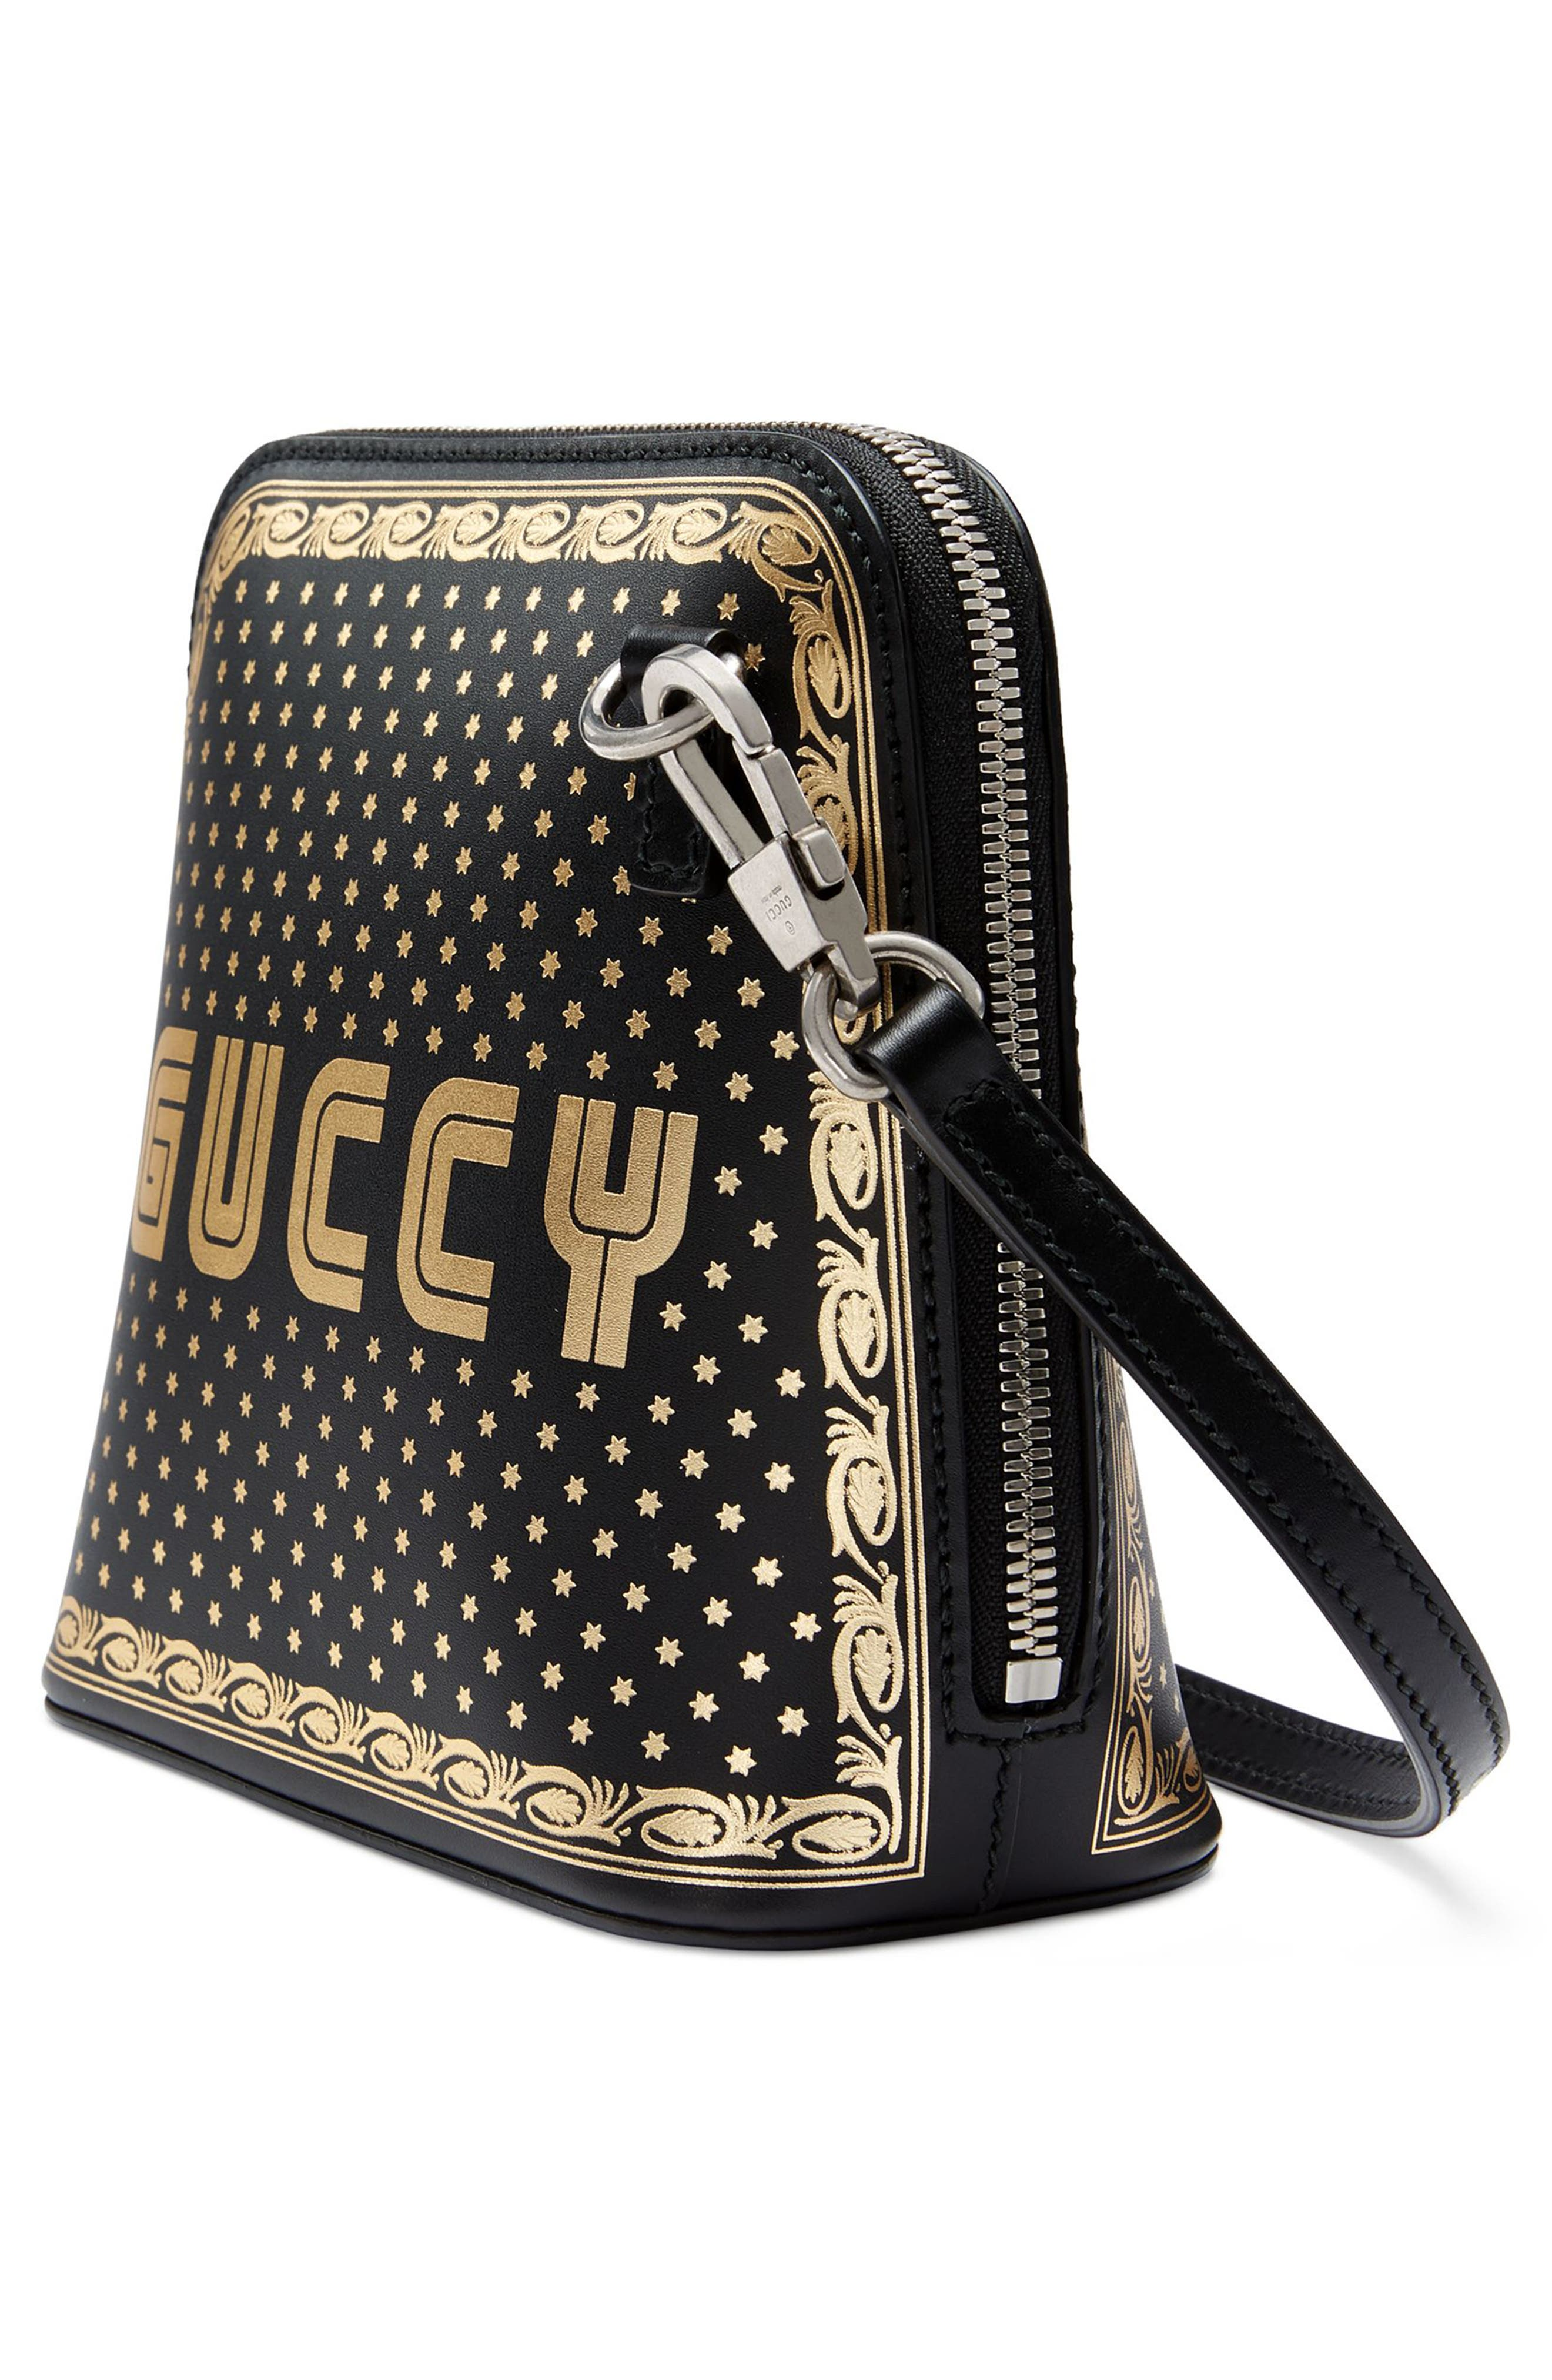 Guccy Logo Moon & Stars Leather Crossbody Bag,                             Alternate thumbnail 4, color,                             NERO/ ORO